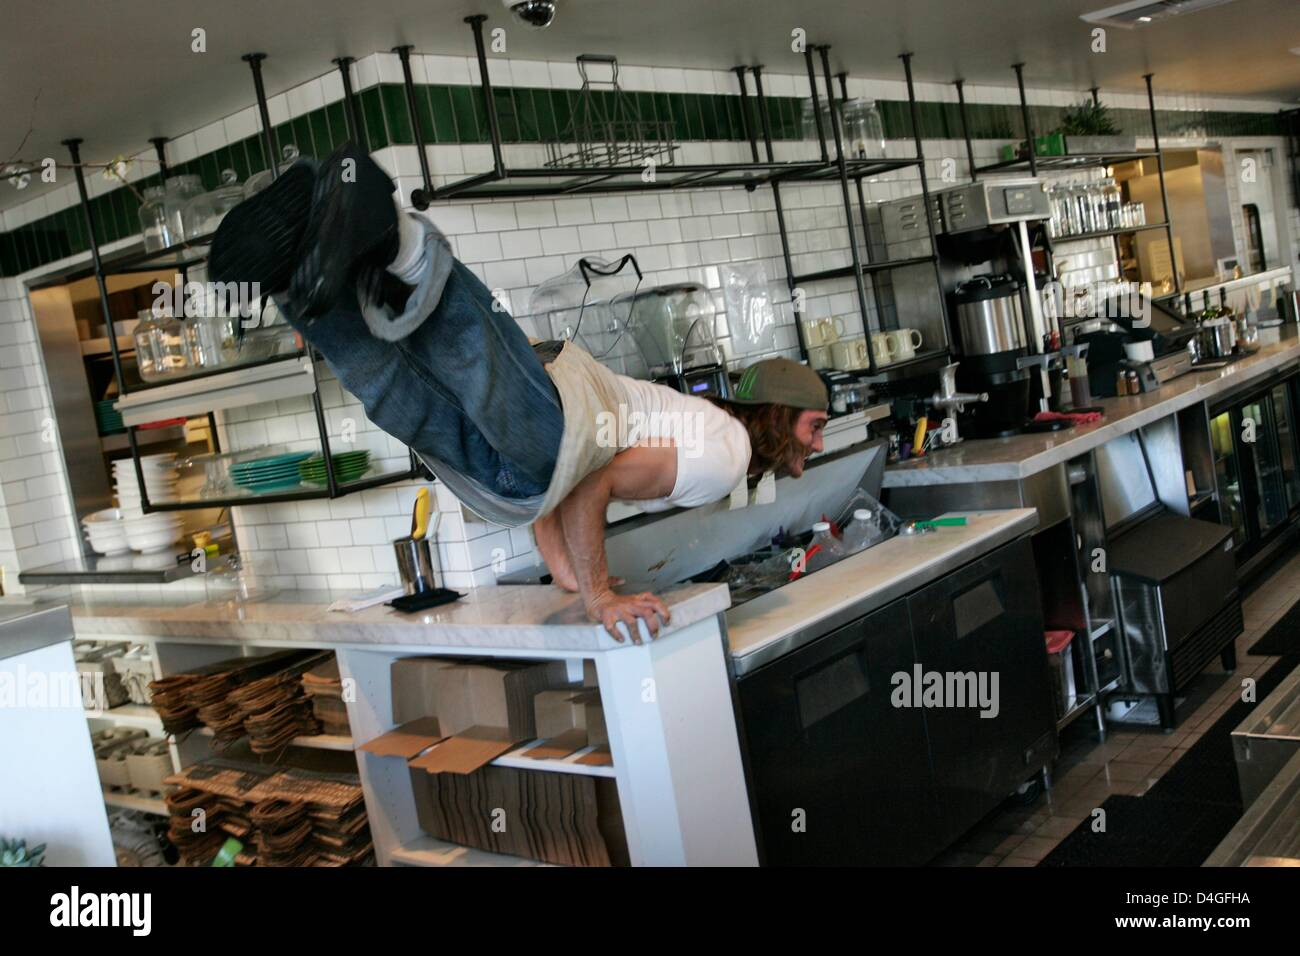 Feb. 3, 2013 - Venice Beach, California, U.S - Performing a yoga move on the juice bar is Joe Lubitsch, bartender - Stock Image